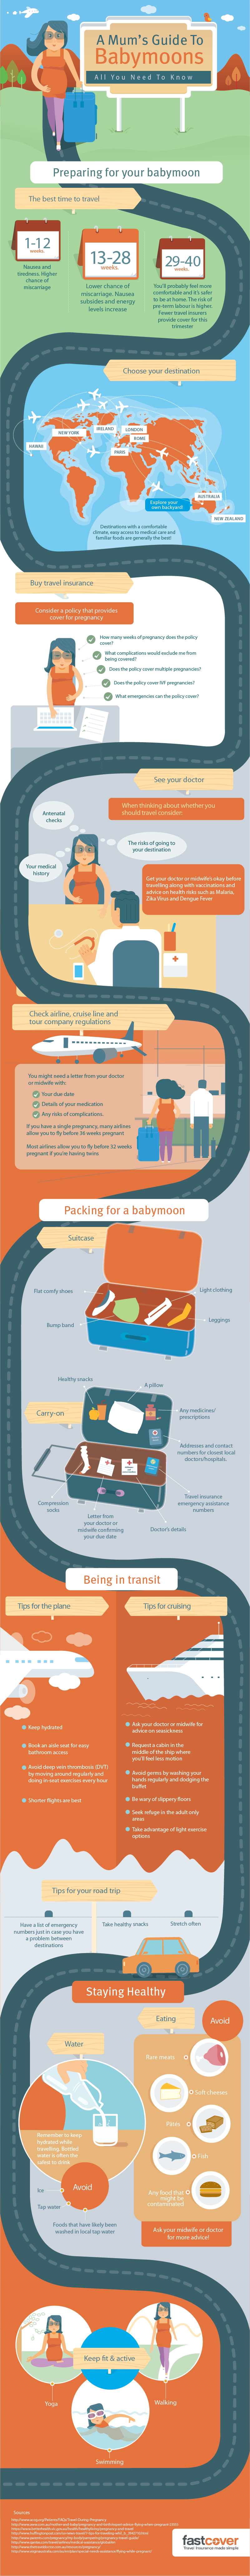 How To Do Babymoons The Right Way - Infographic